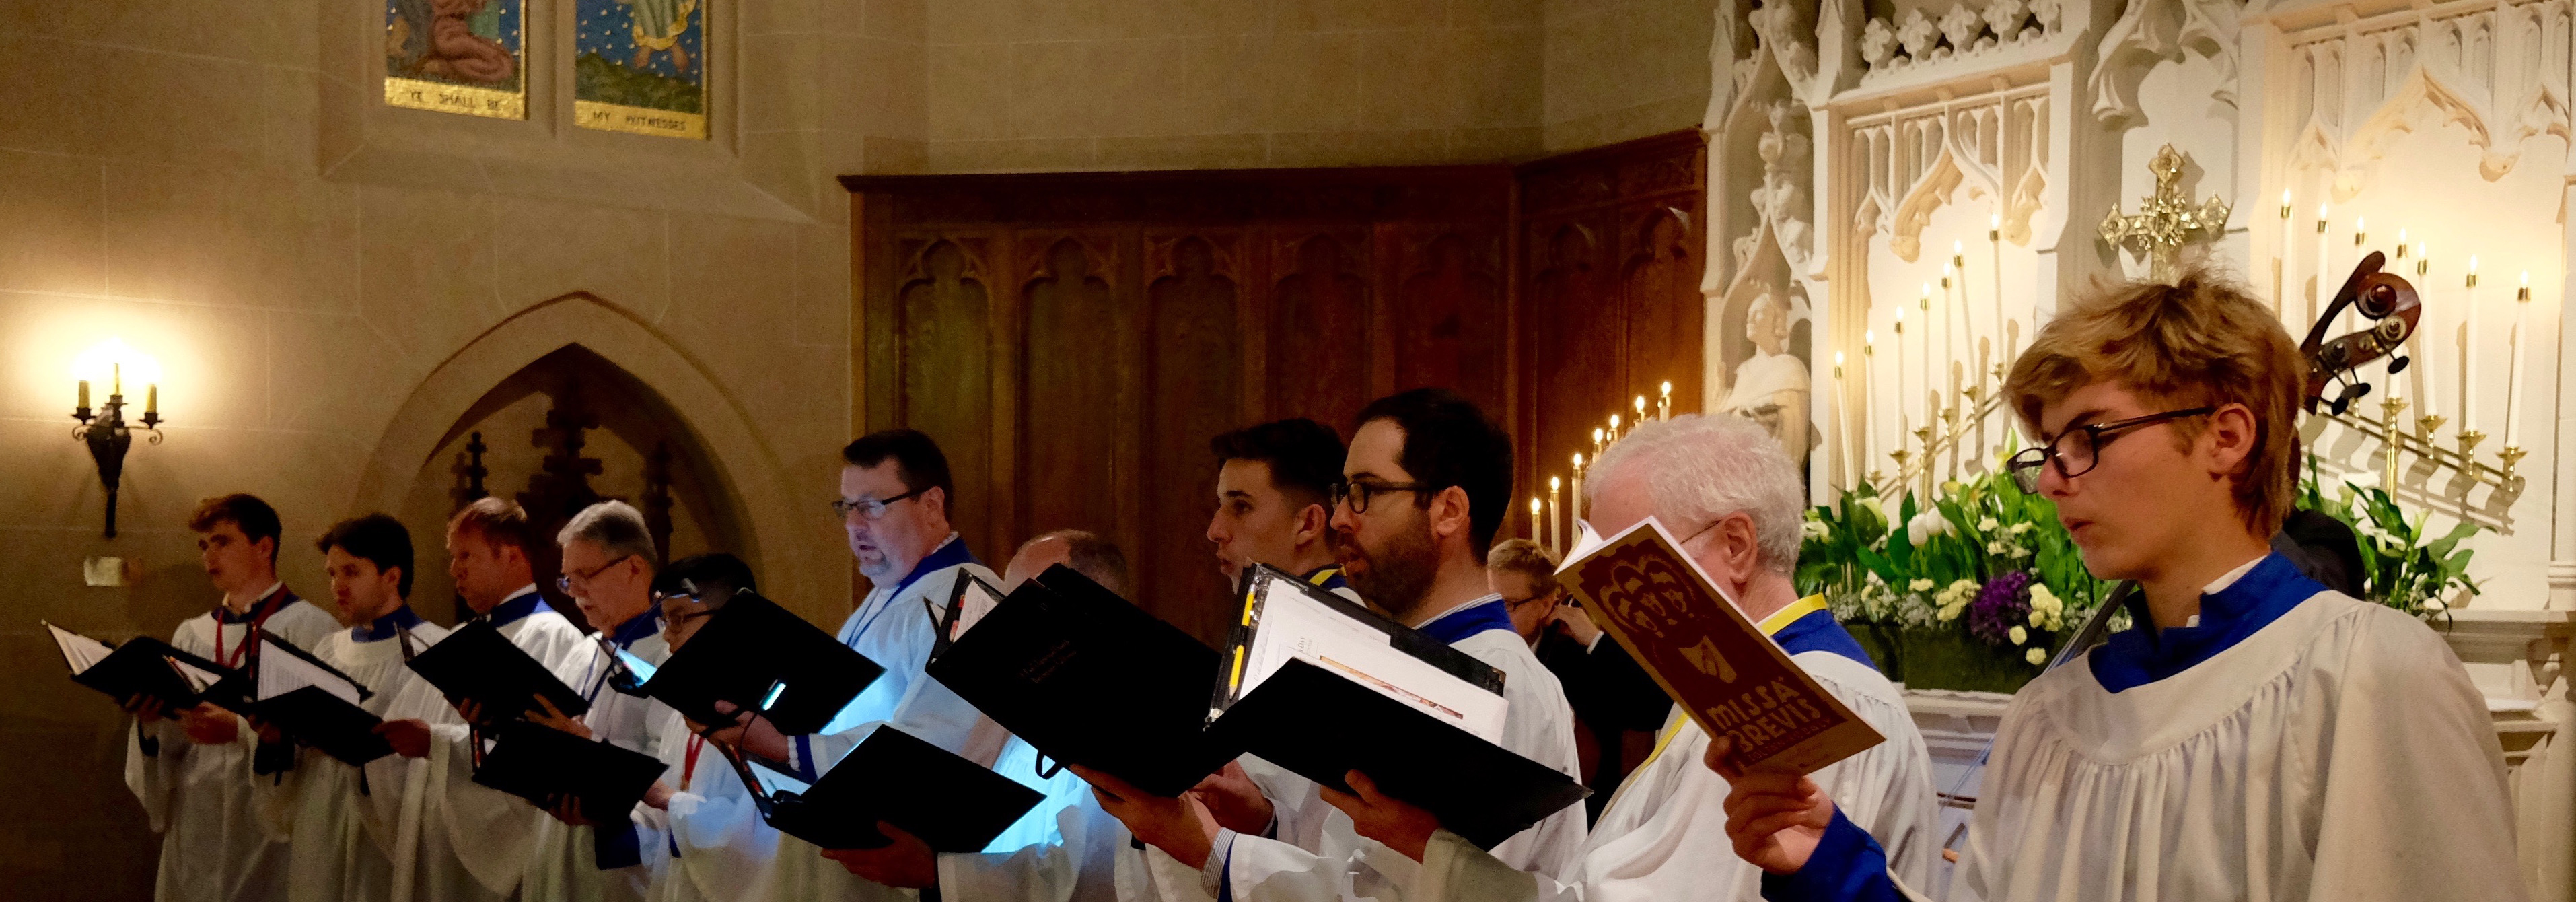 mens choir easter 17 crop